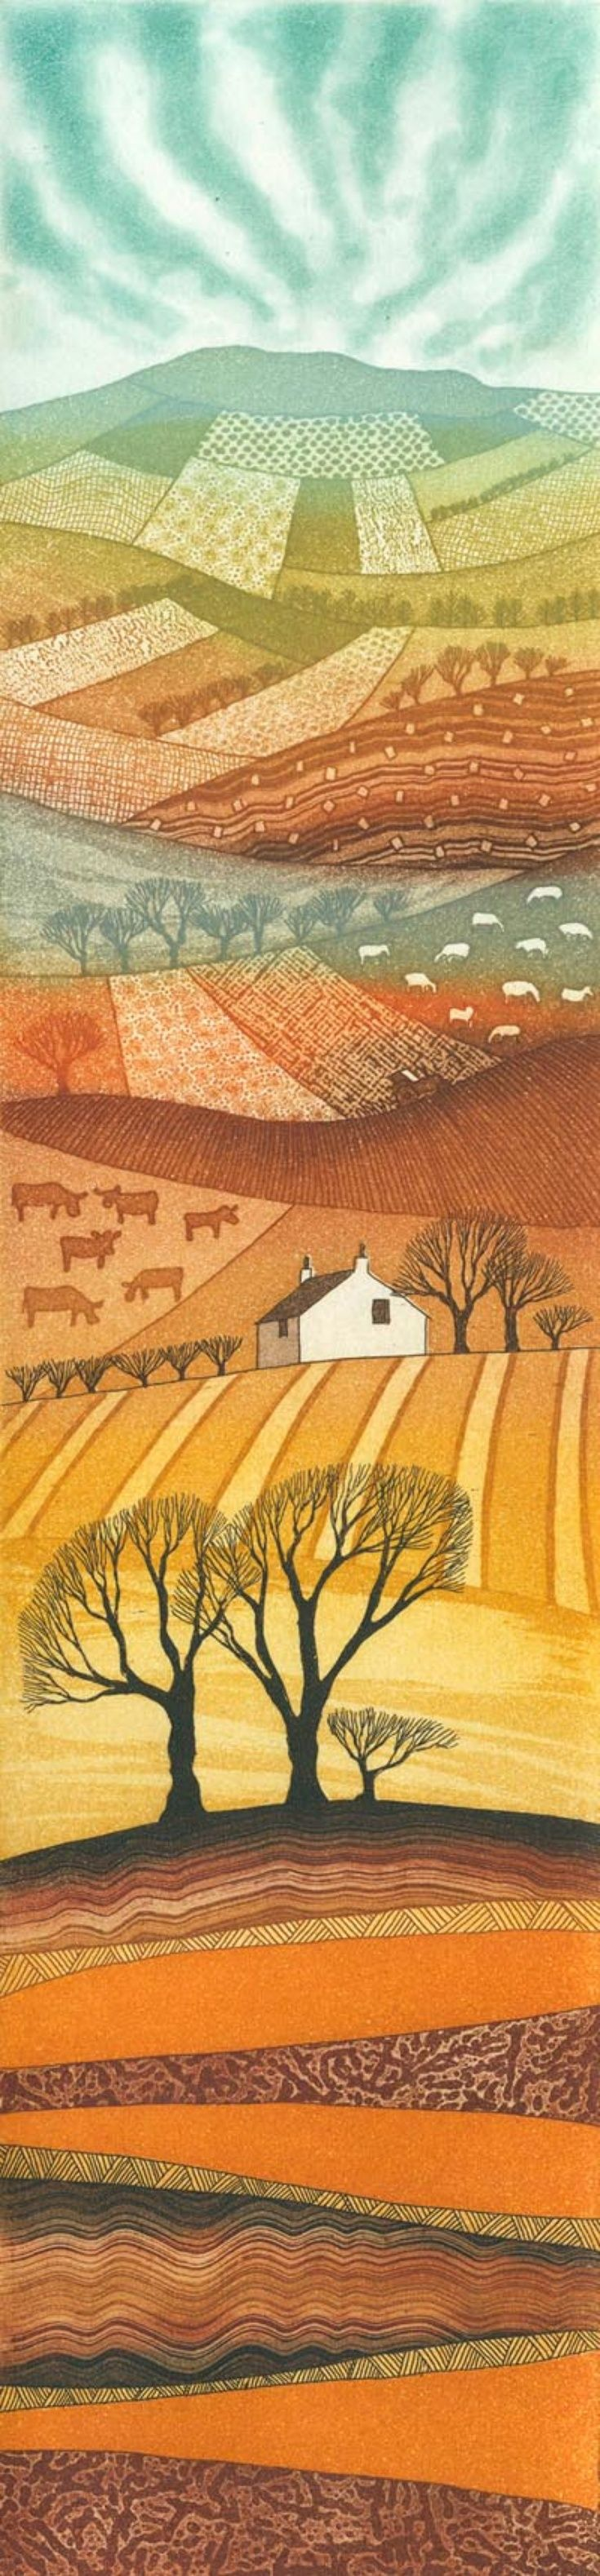 ARTFINDER: Farmer's Fields by Rebecca Vincent - This etching was created on two copper plates - tiny grooves and pits were made on each using a variety of resists and ferric chloride. Both plates are inked...